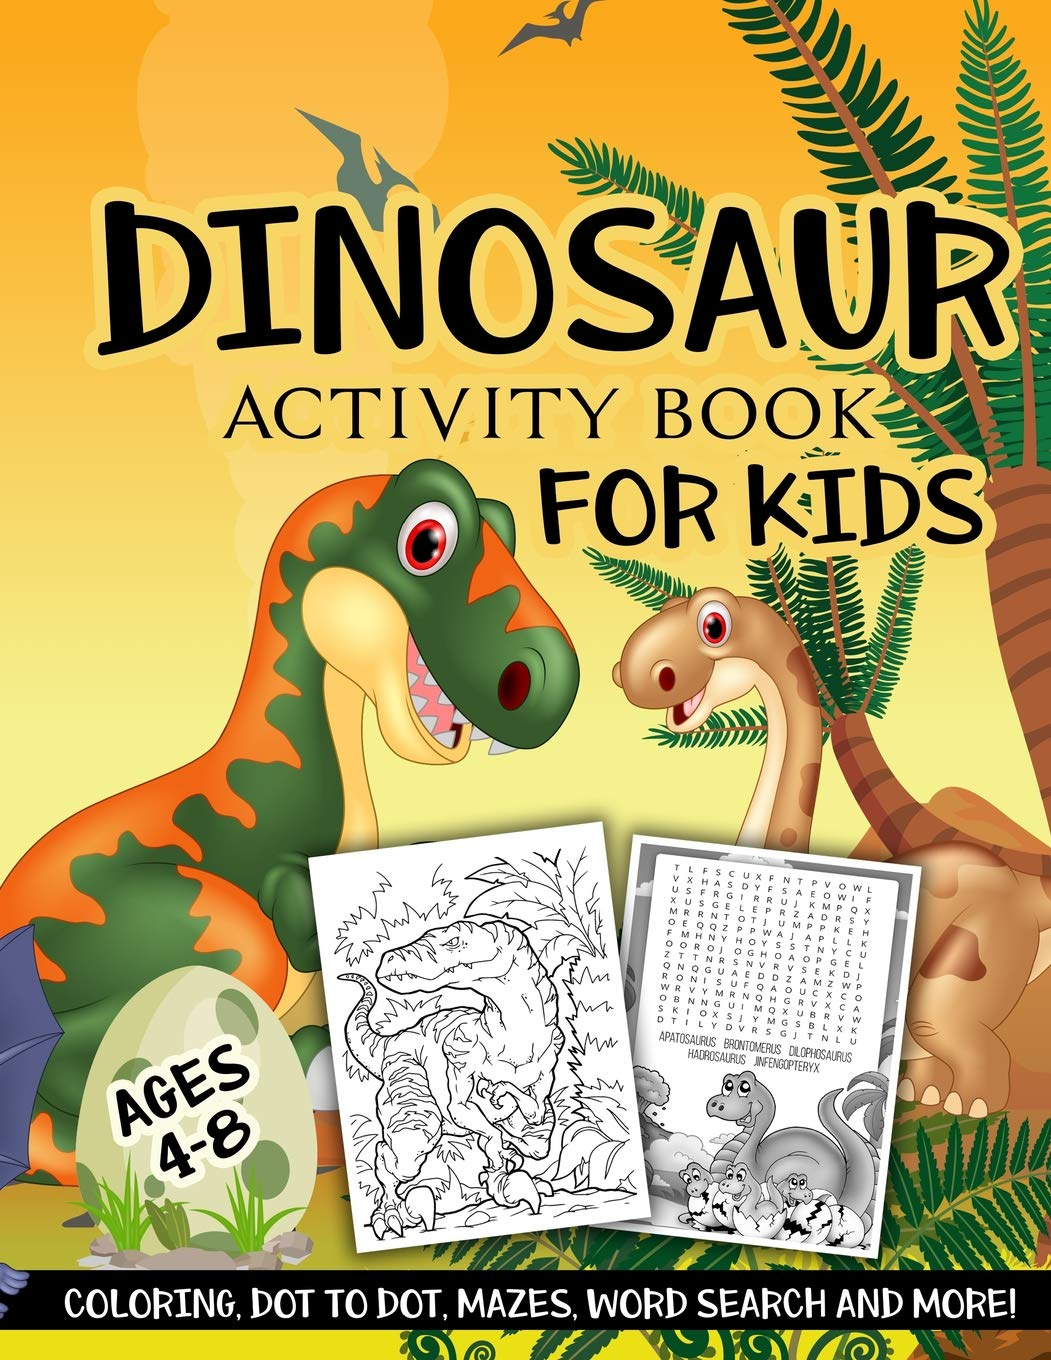 Dinosaur Activity Book Kids Ages product image